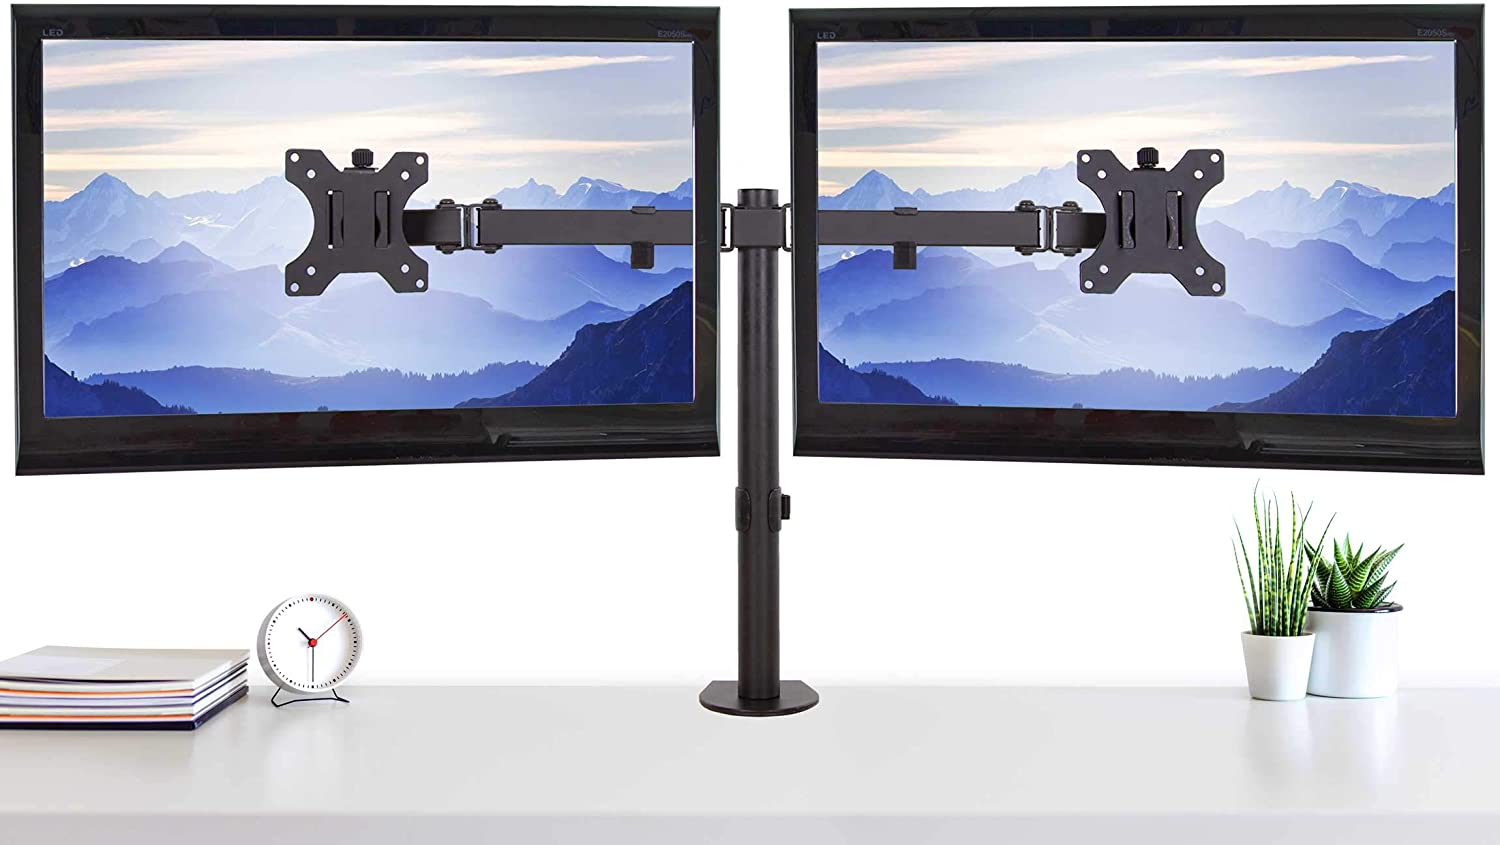 Stand Steady 2 Monitor Mount Desk Stand | Height Adjustable Double Monitor Stand with Desk Clamp| Full Articulation VESA Mount Fits Most LCD/LED Monitors 13-32 Inches (2 Arm Clamp)